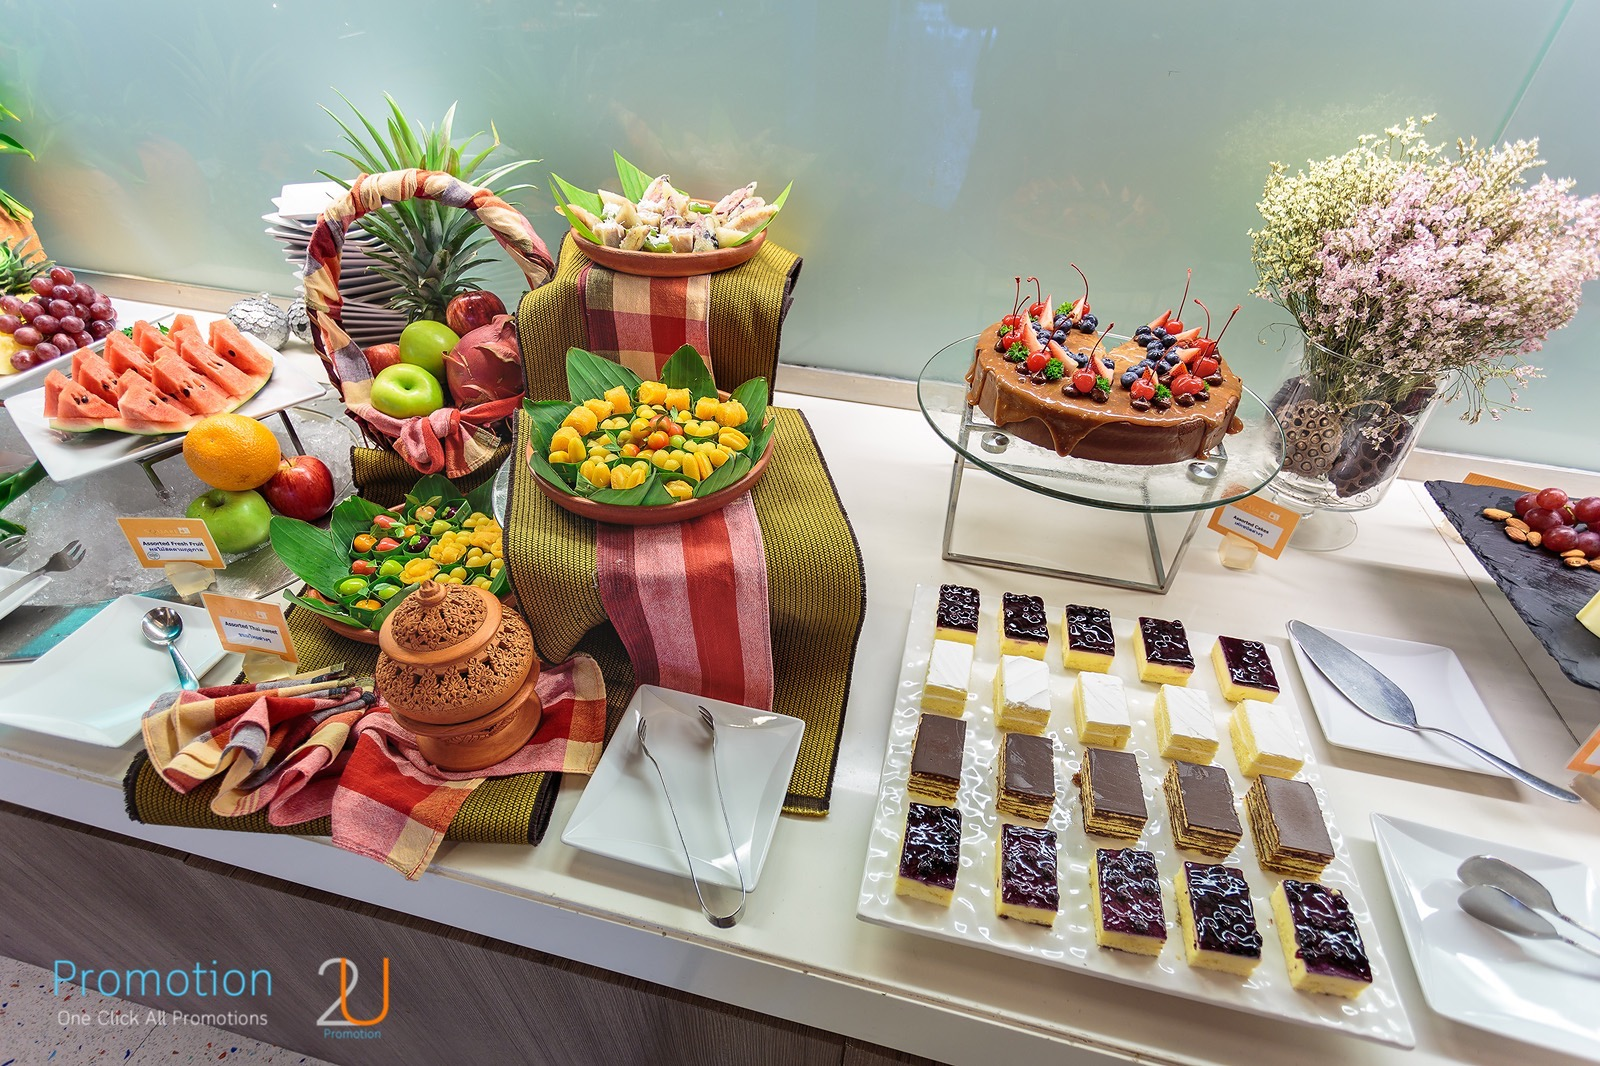 Review promotion muangthong koongtung bufft at the suare novotel impact P69